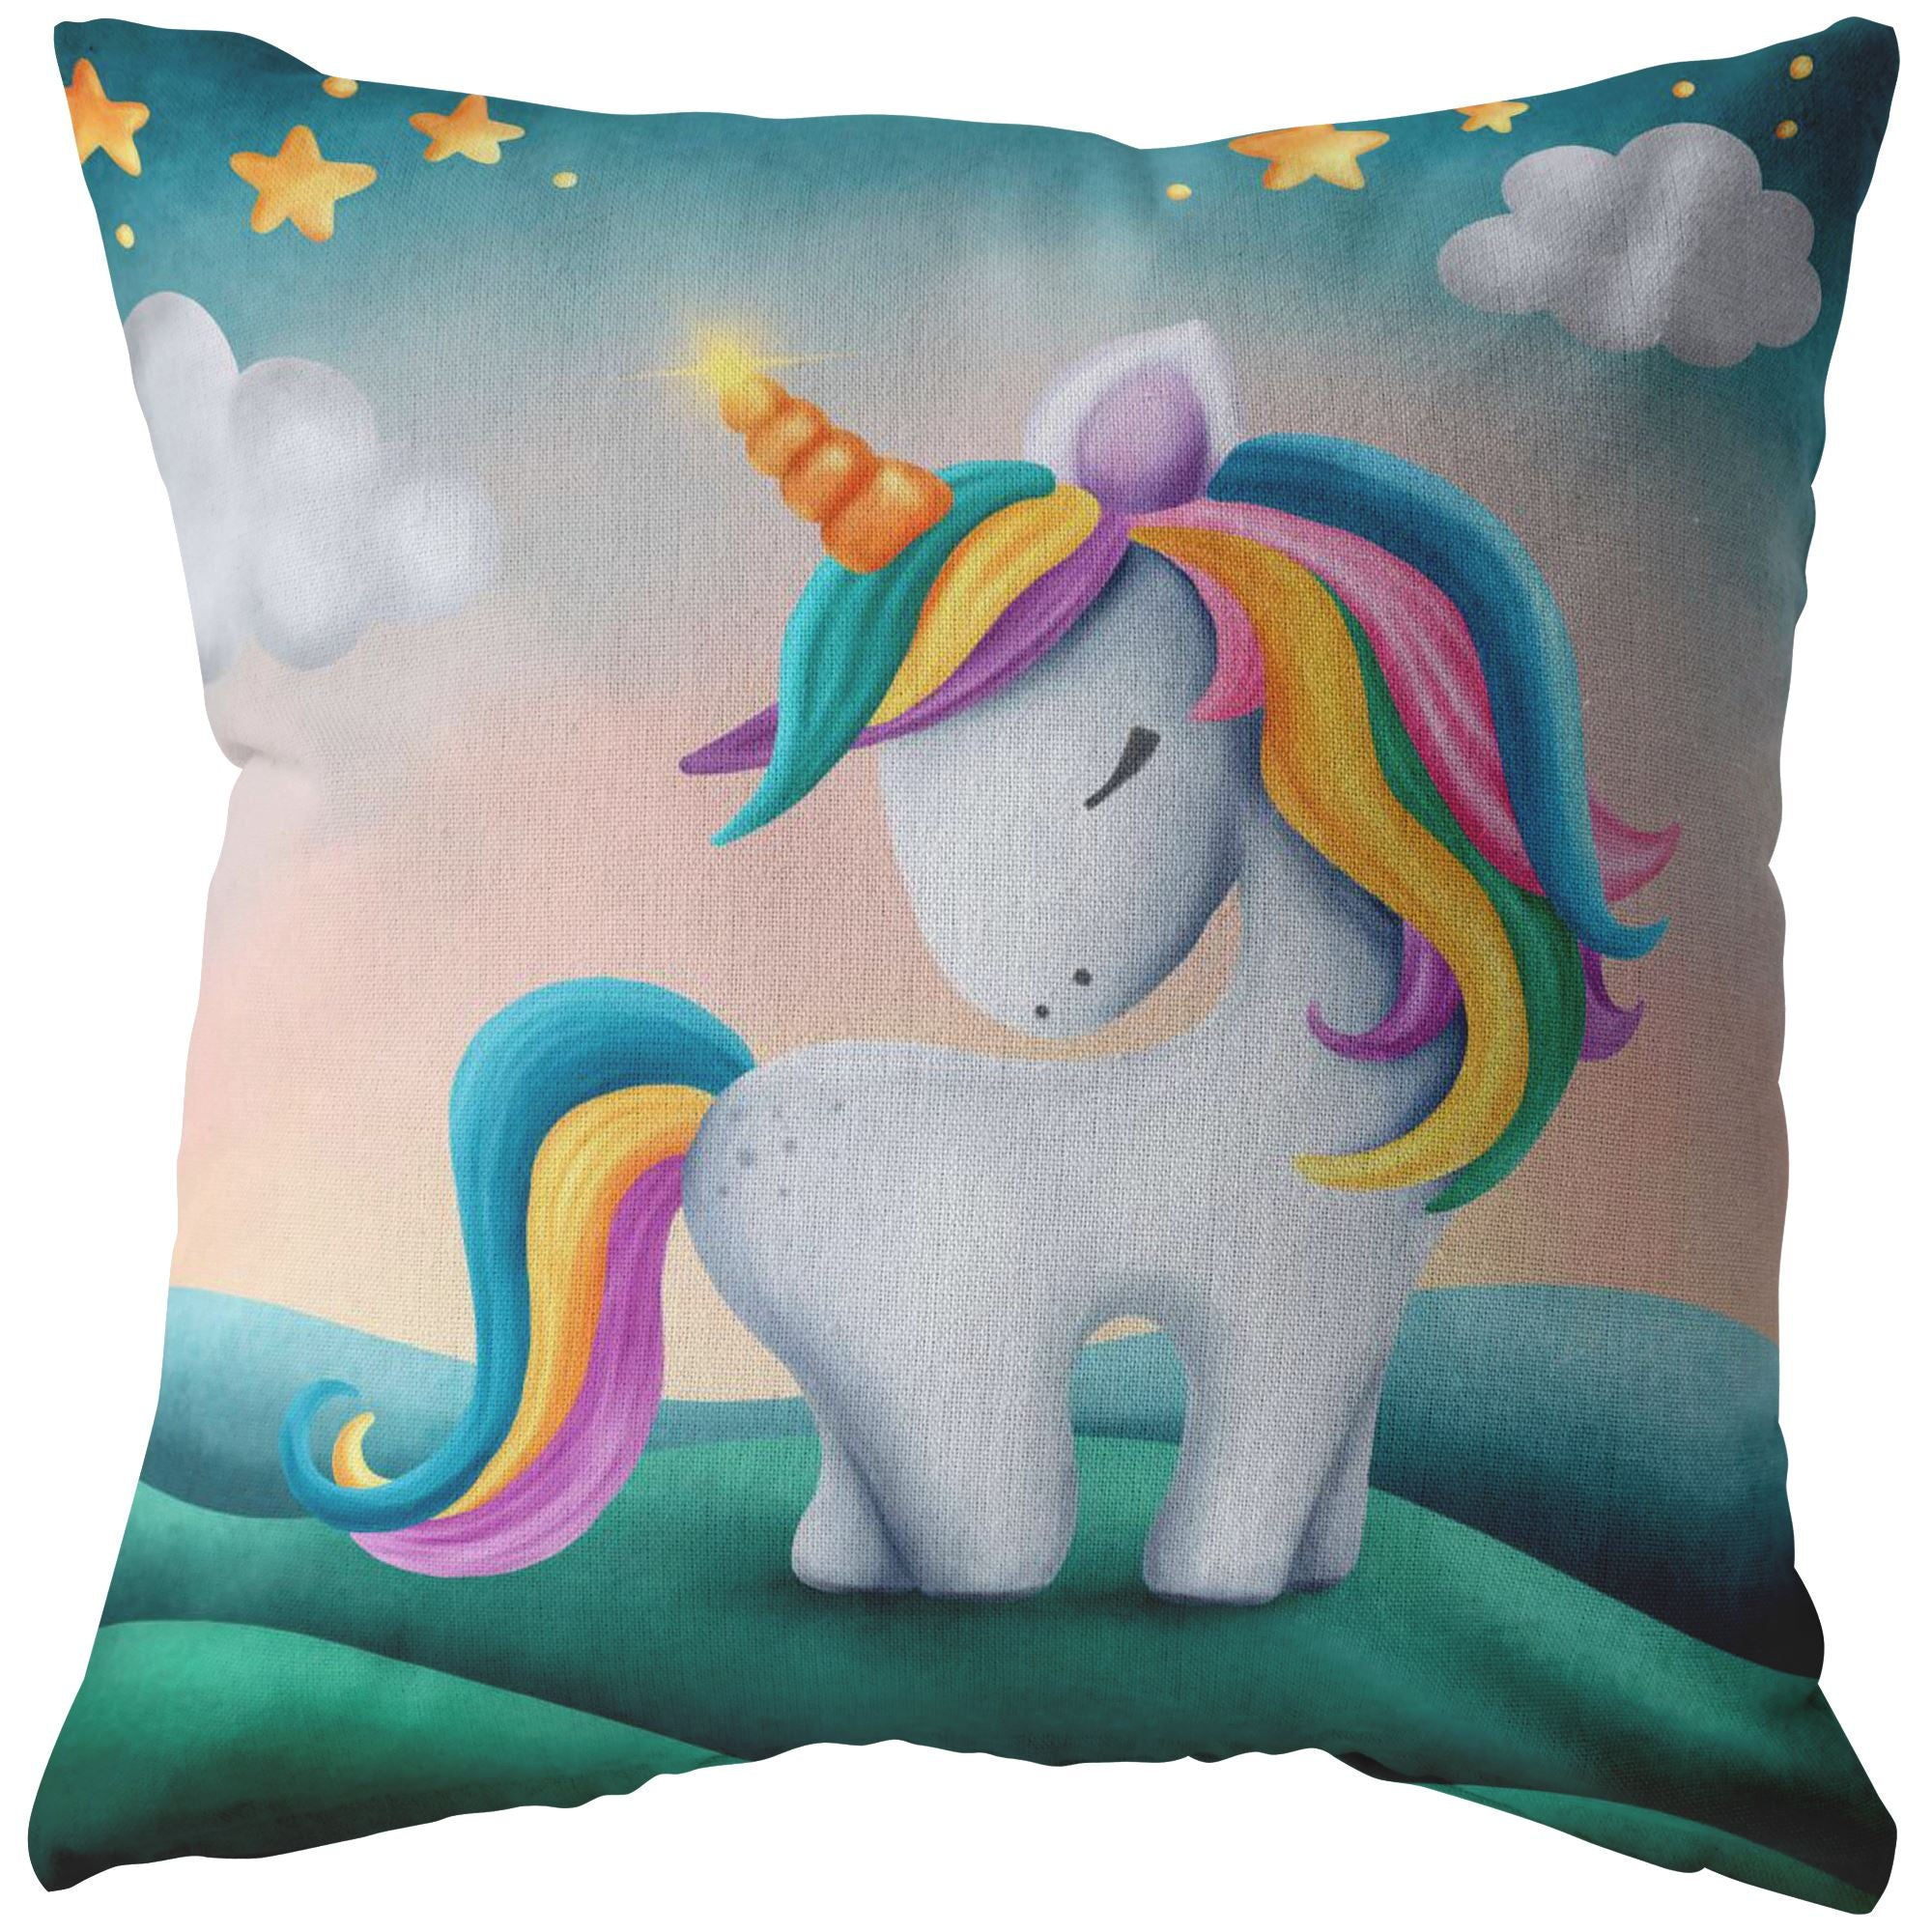 Unique Unicorn Throw Pillow • Perfect Home Decor Pillows Multi teelaunch Stuffed & Sewn 16 x 16